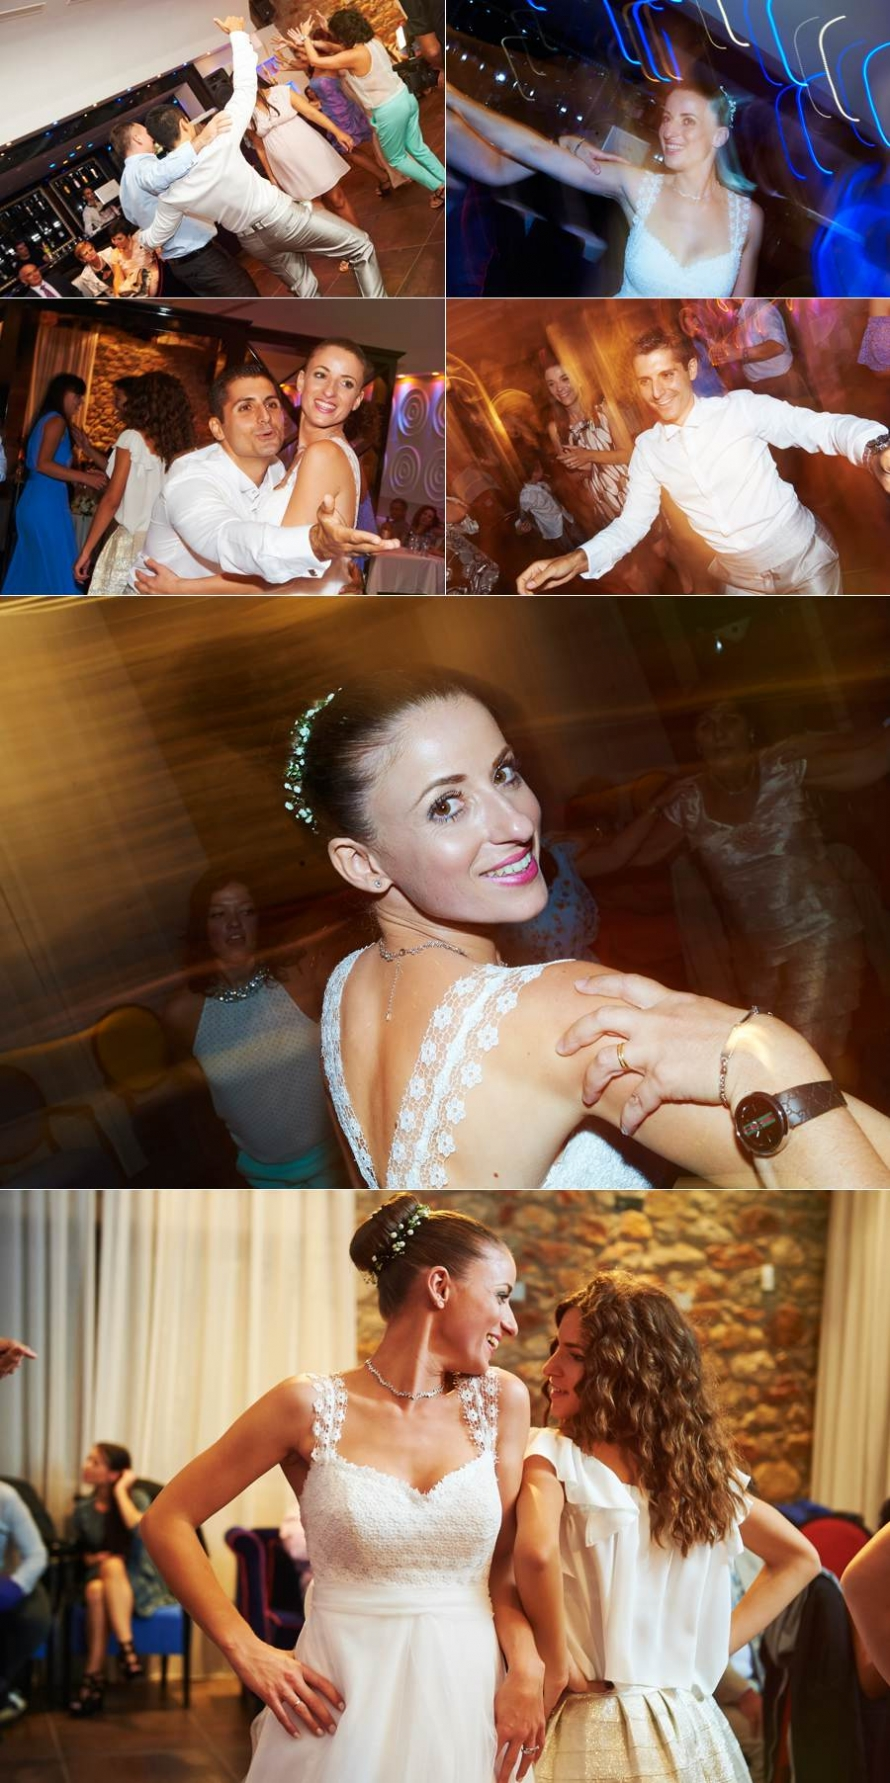 Nikos Anastasia wedding photos_0017